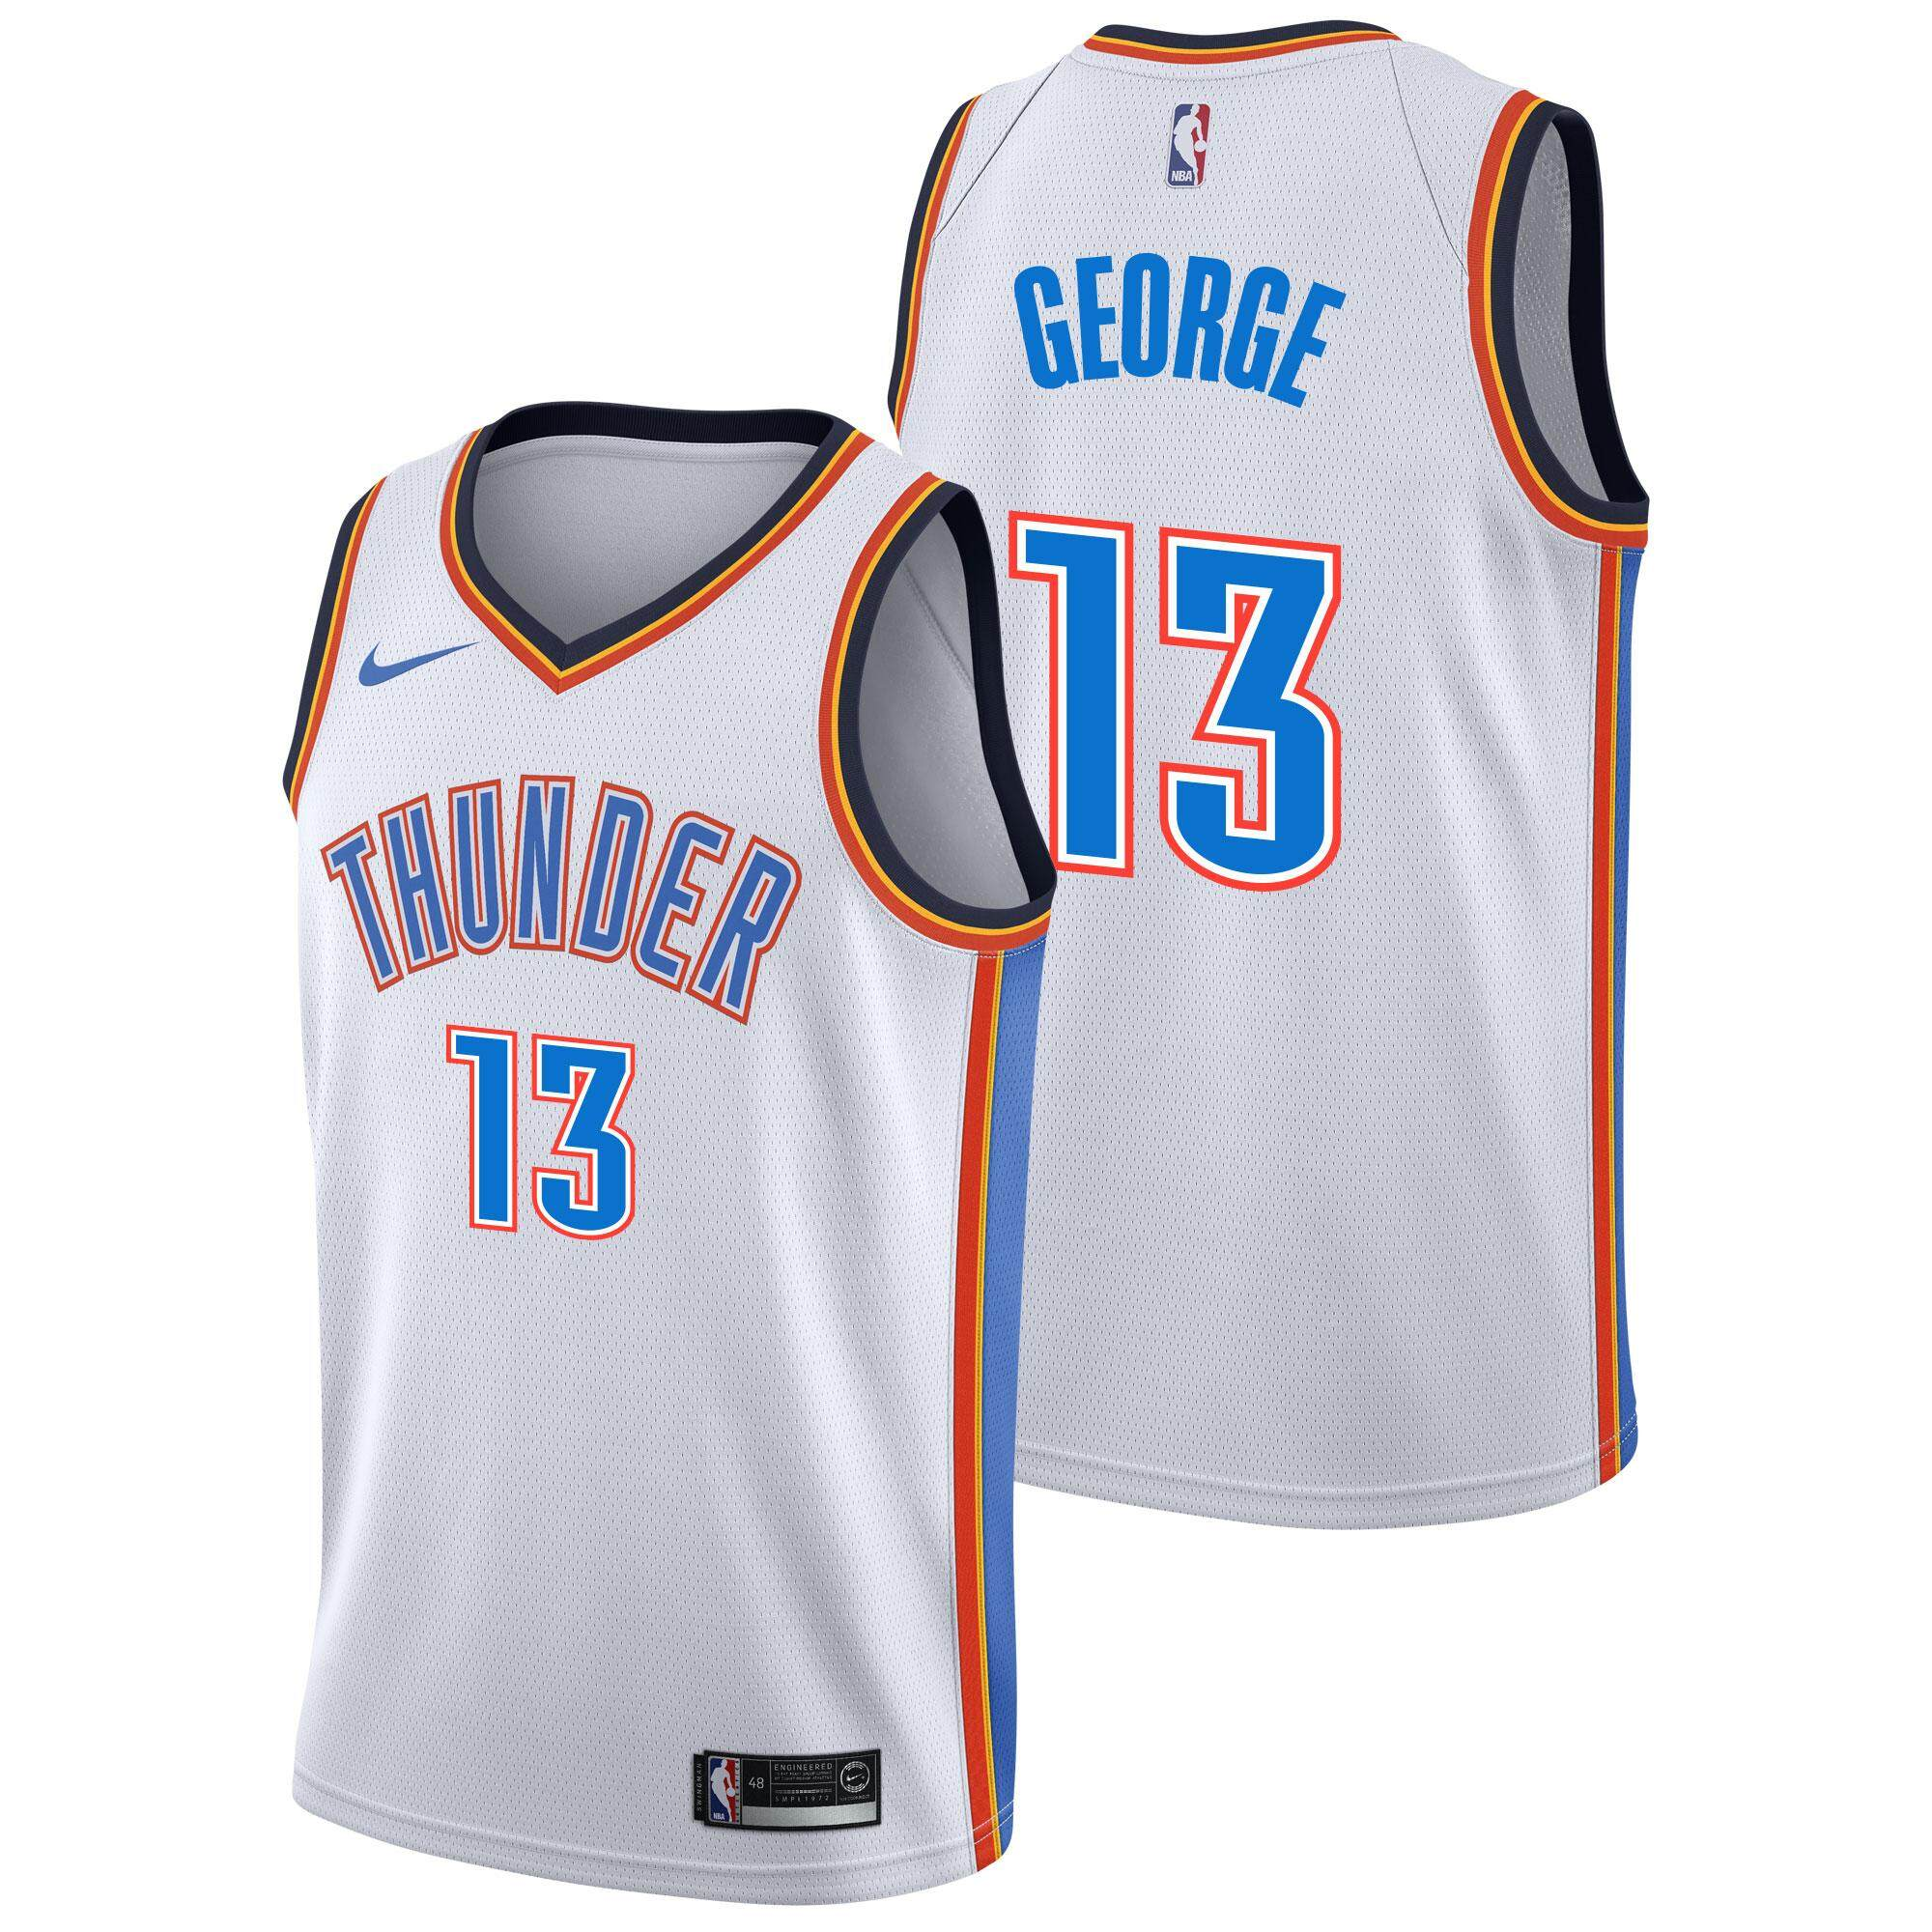 432ef938fa6b NBA For Man Basketball Clothes Swingman Jersey Number 13 Oklahoma City  Thunder Paul George Fashion Grey